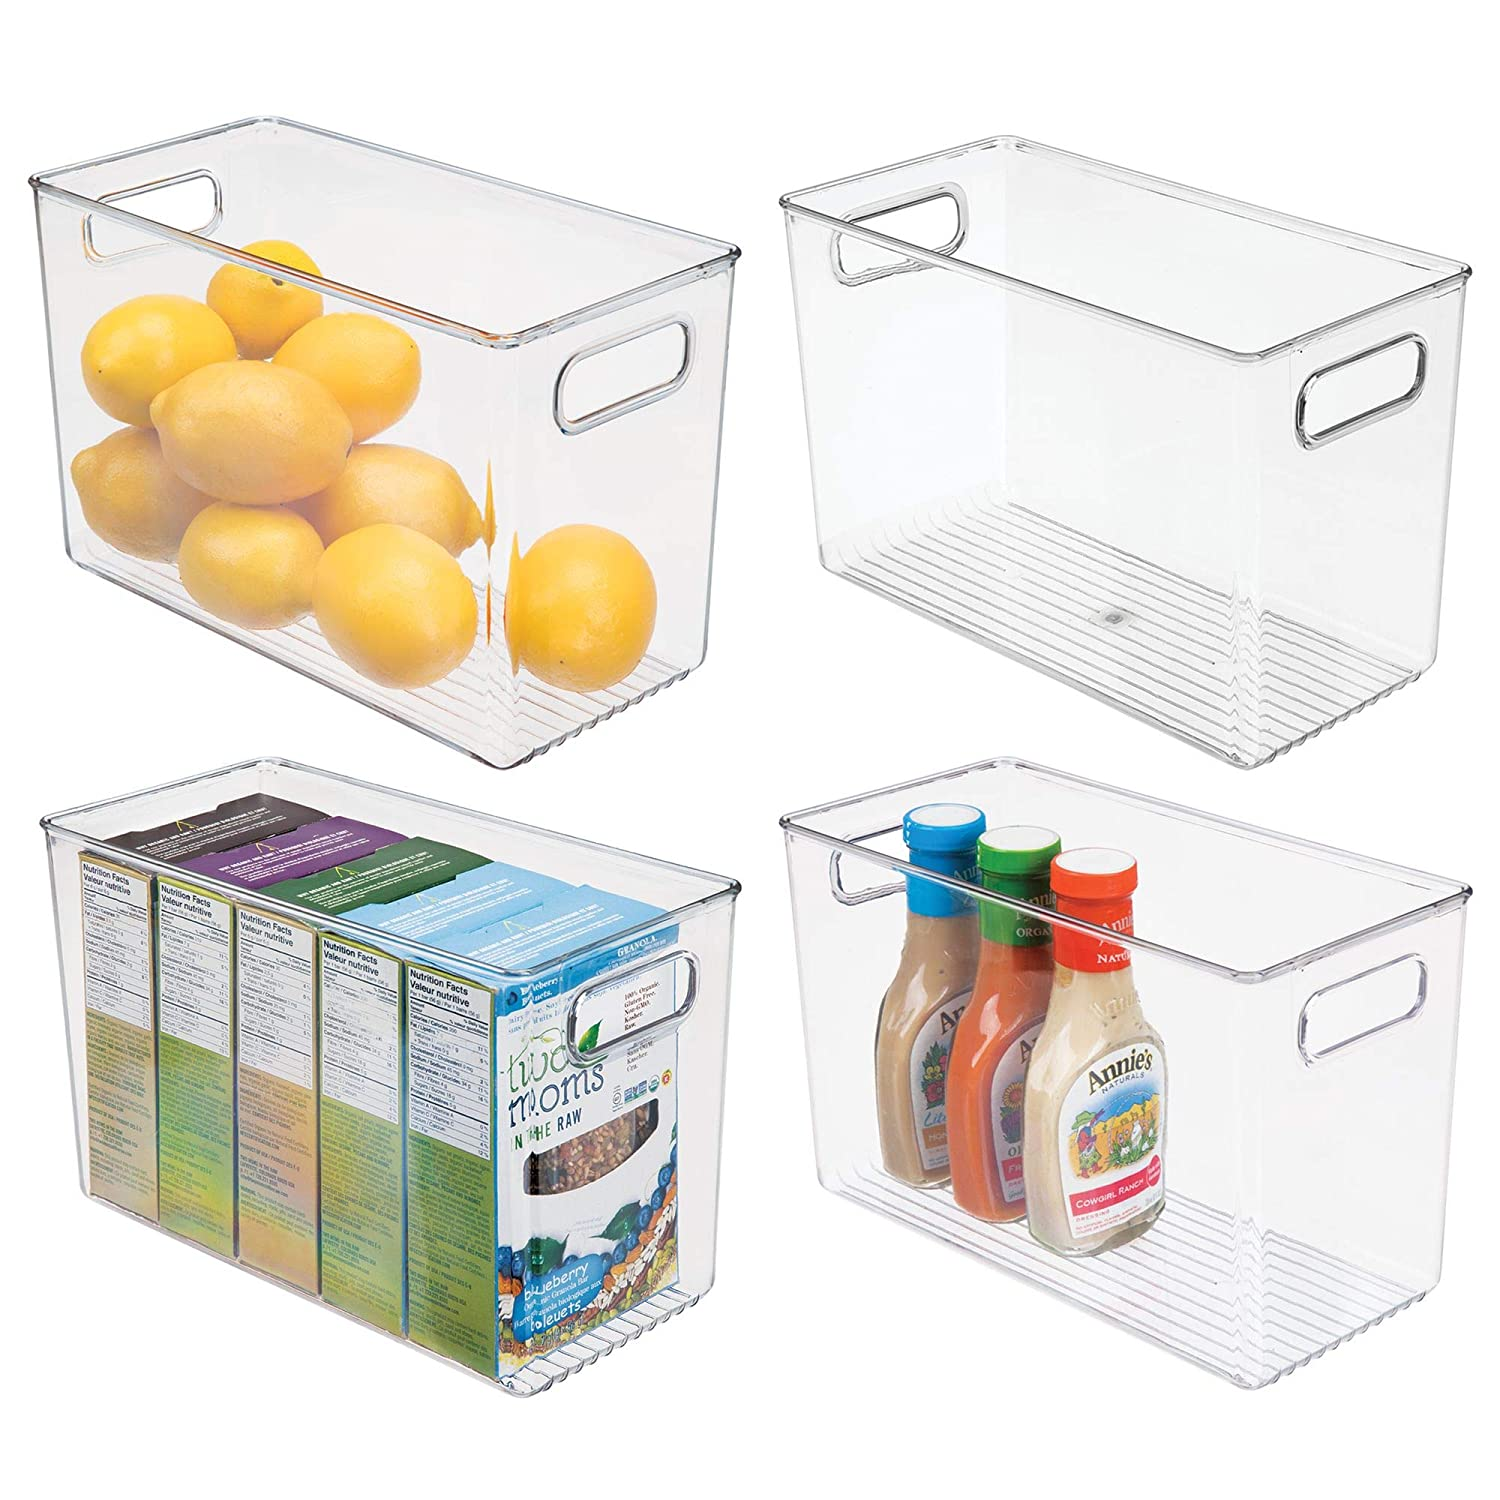 mDesign Plastic Food Storage Container Bin with Handles - for Kitchen, Pantry, Cabinet, Fridge/Freezer - Narrow for Snacks, Produce, Vegetables, Pasta - BPA Free, Food Safe - 4 Pack, Smoke Gray